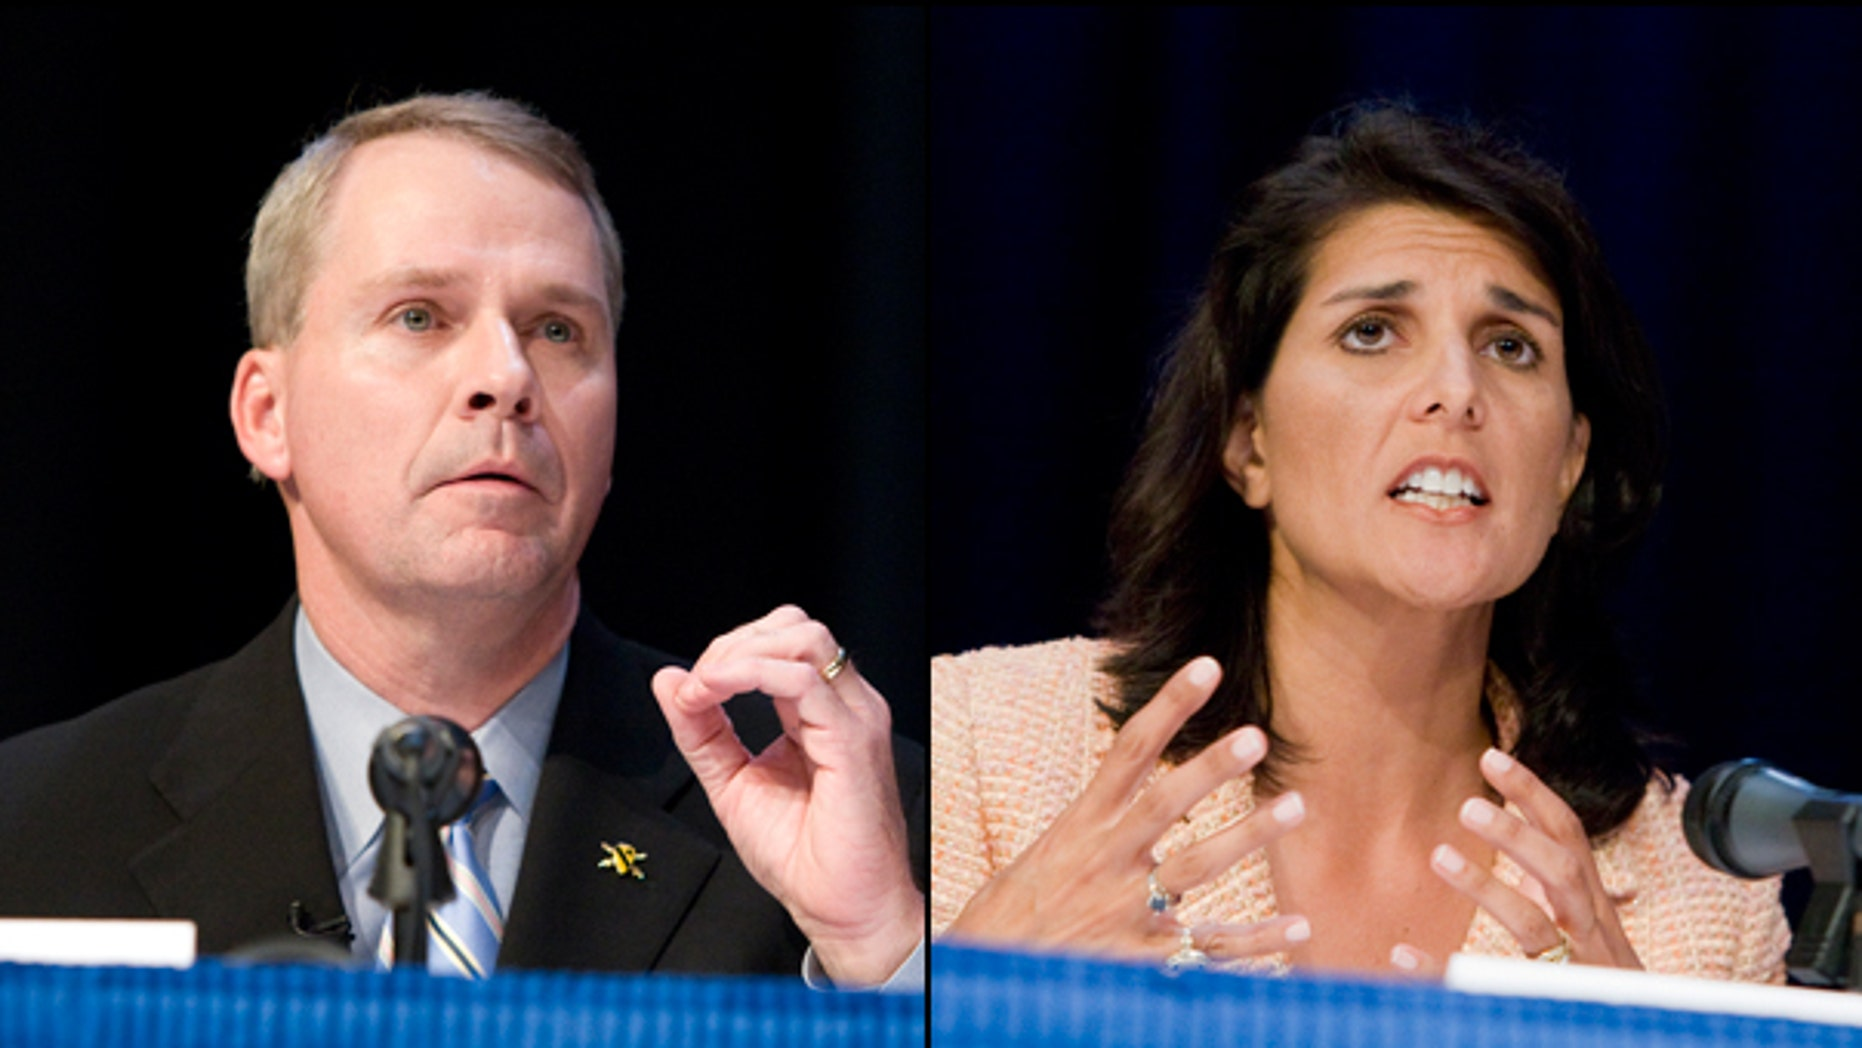 U.S. Rep. Gresham Barrett, (l) and South Carolina Rep. Nikki Haley will meet in a runoff election June 22 to suceed South Carolina Gov. Mark Sanford. (AP)(